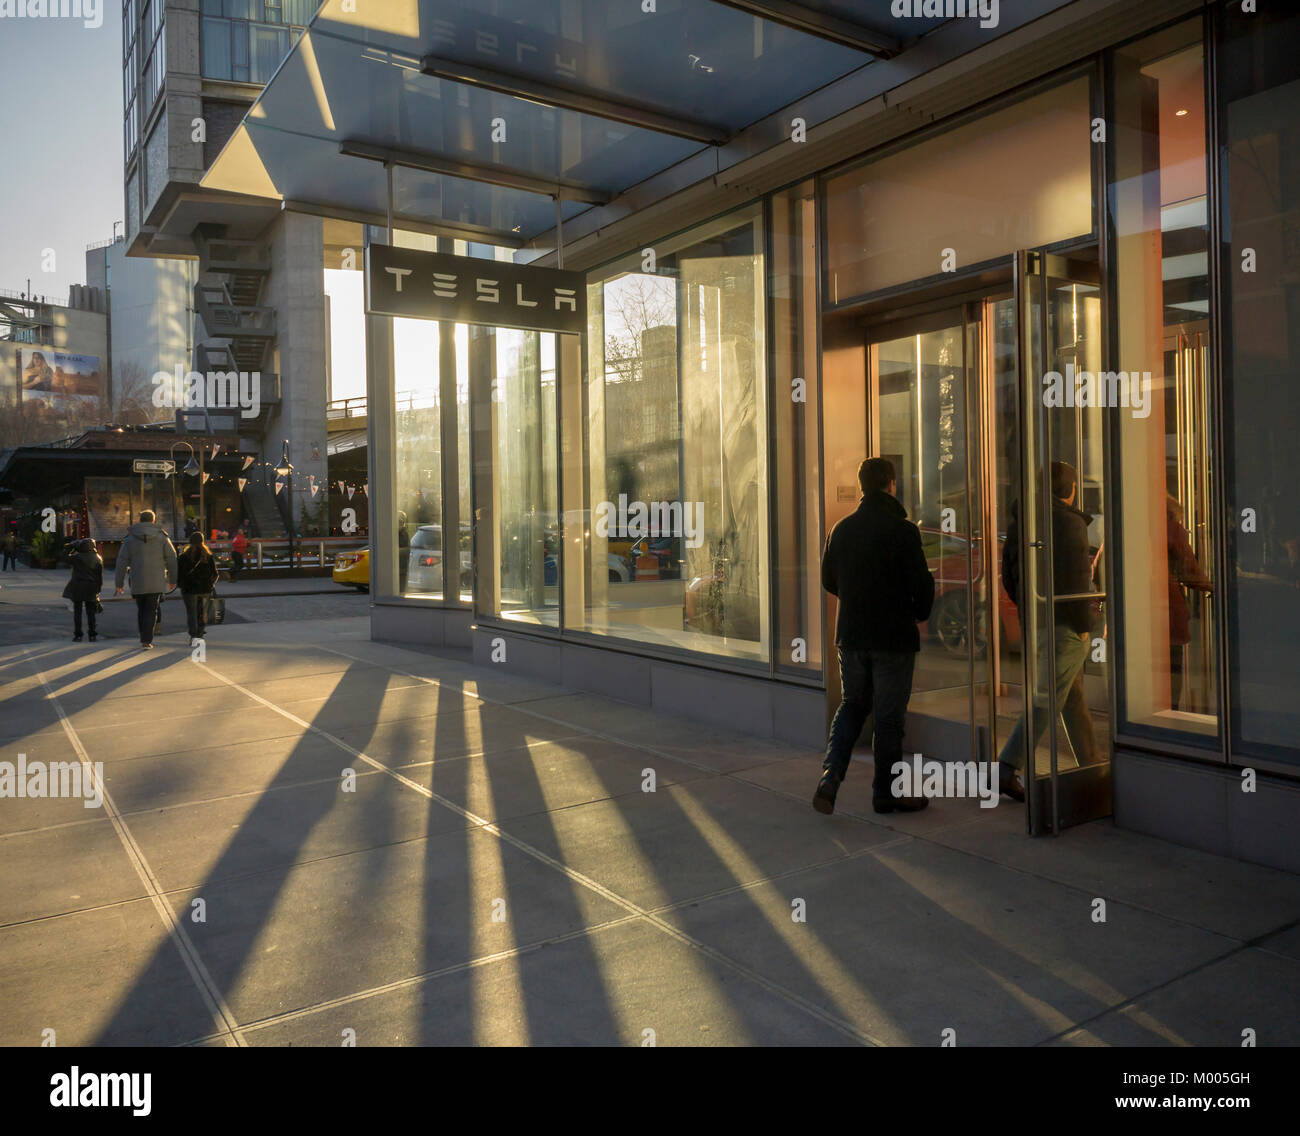 Curious visitors to the new Tesla Motors showroom in the Meatpacking district of New York on Monday, January 15, - Stock Image